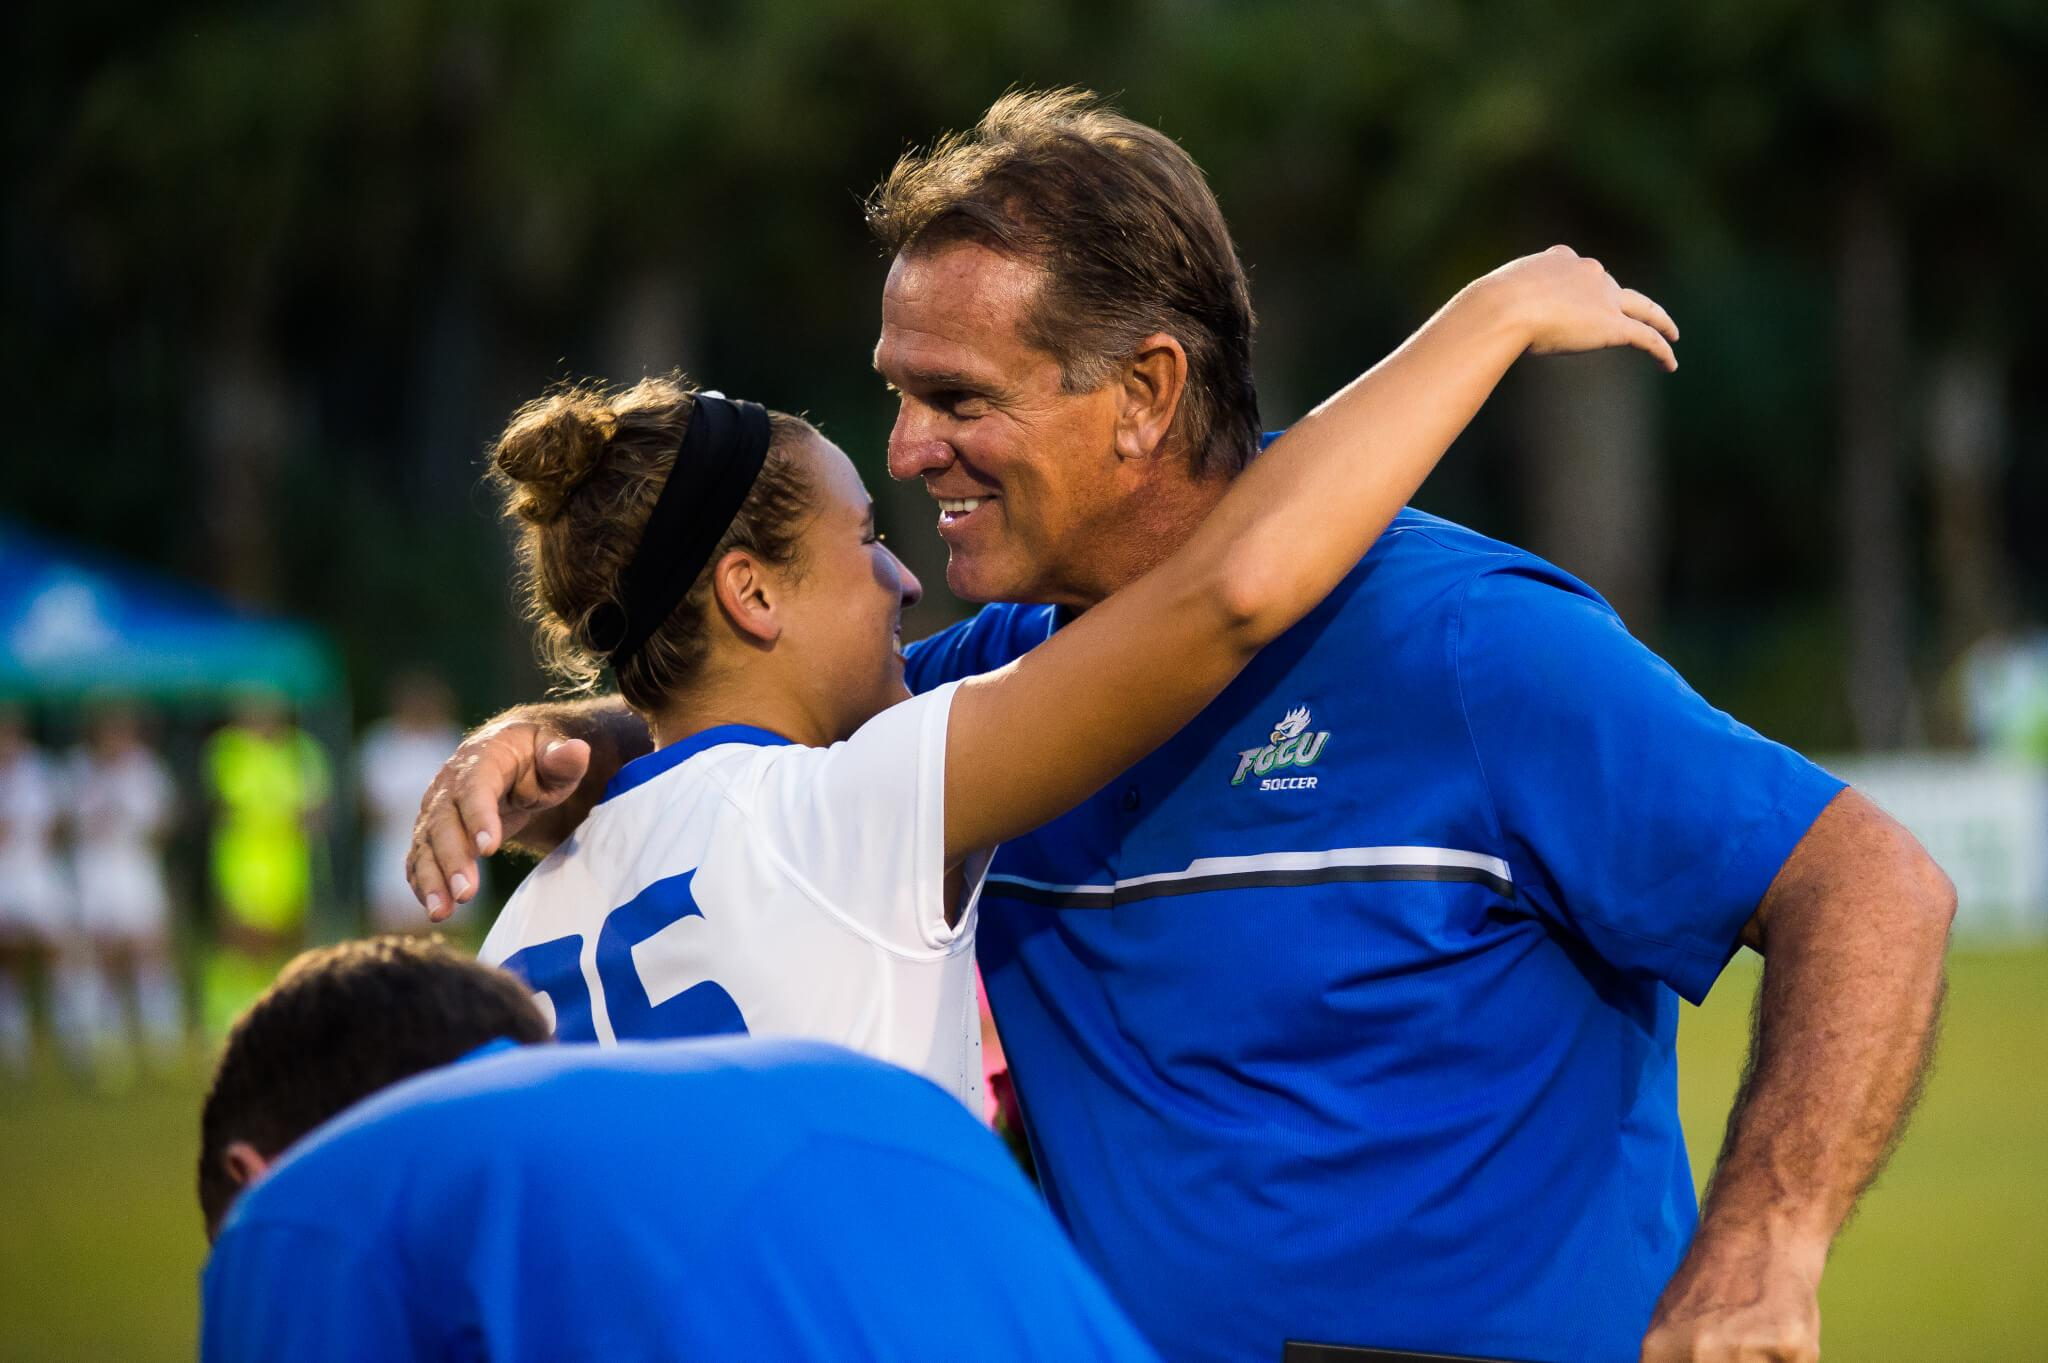 FGCU women's soccer takes first place in ASUN Conference with 2-1 victory over Stetson